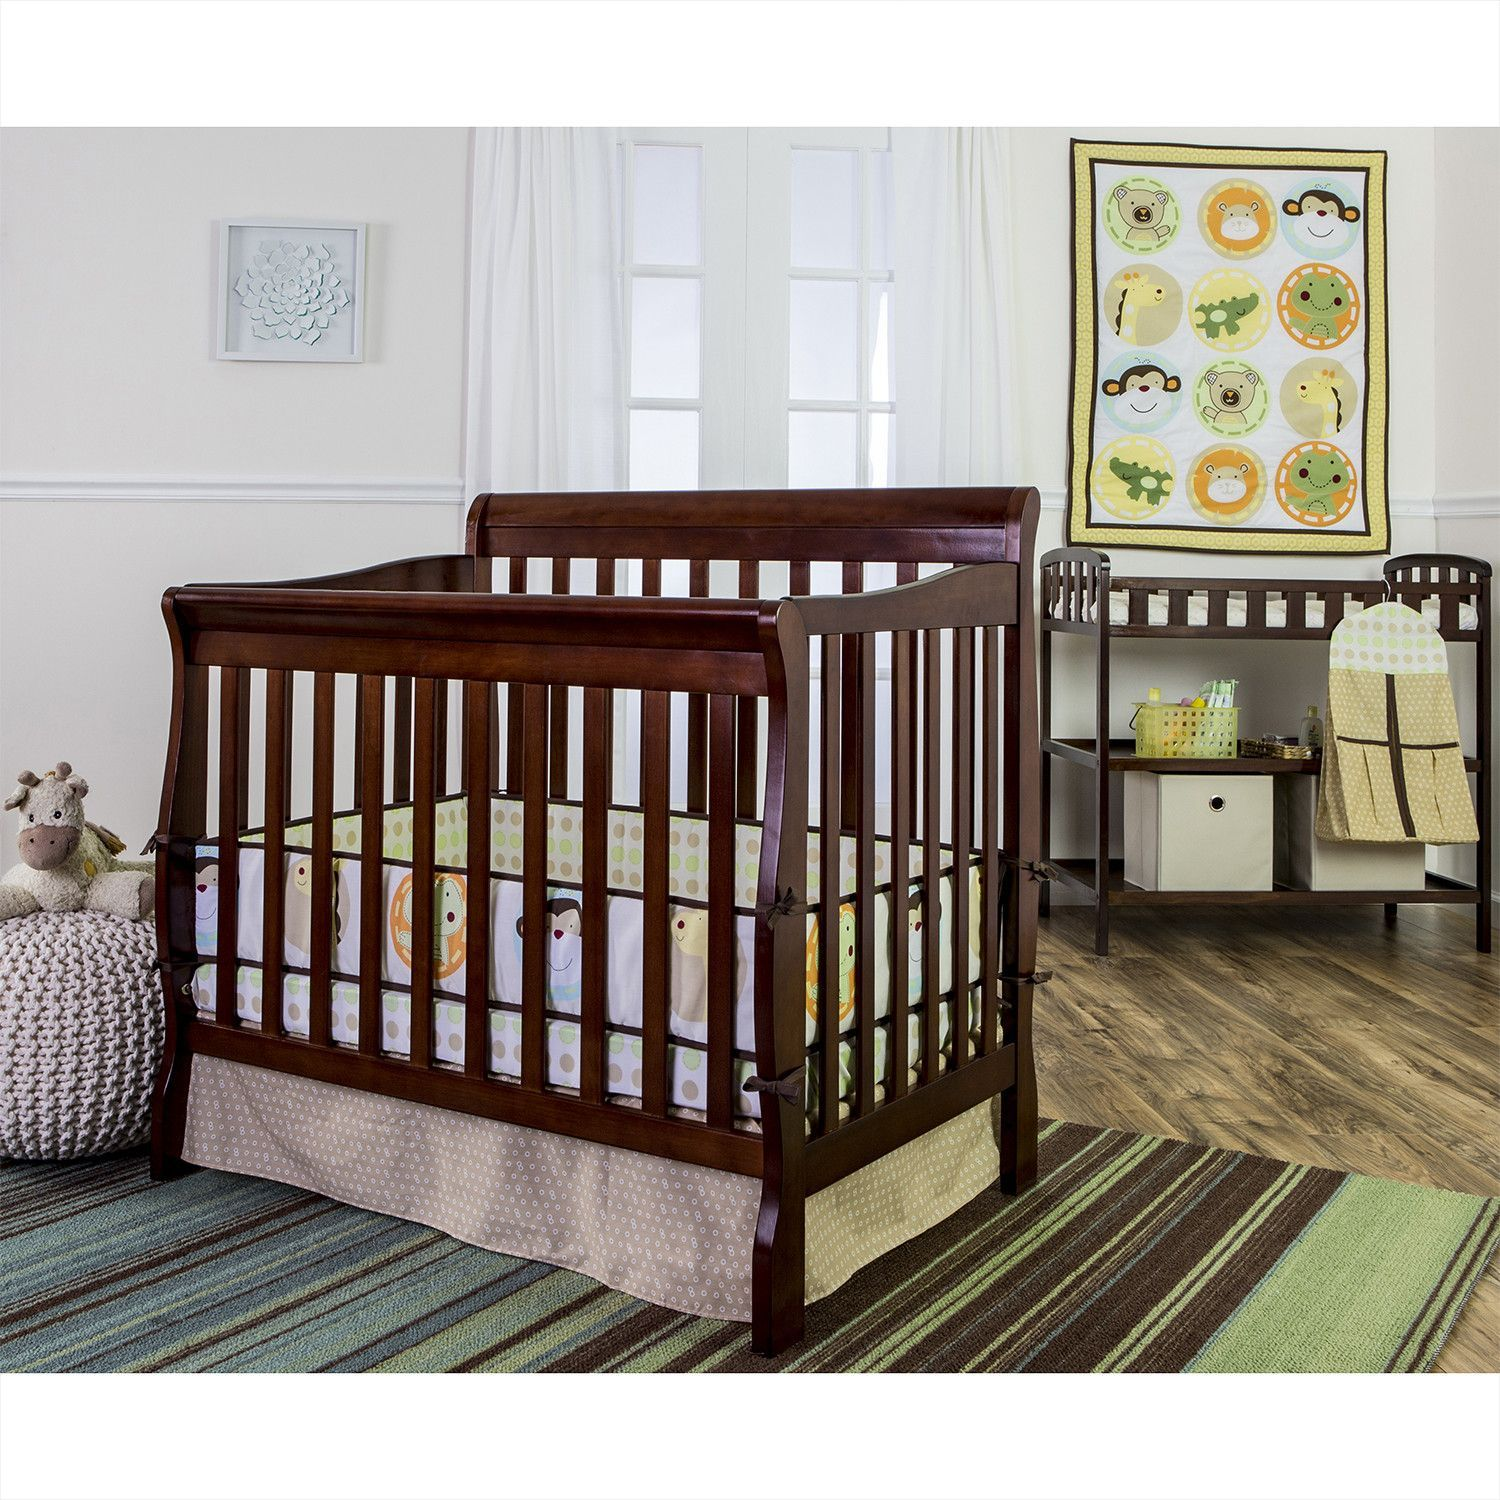 Gocrib adventure crib for sale - Animal Kingdom 5 Piece Crib Bedding Set